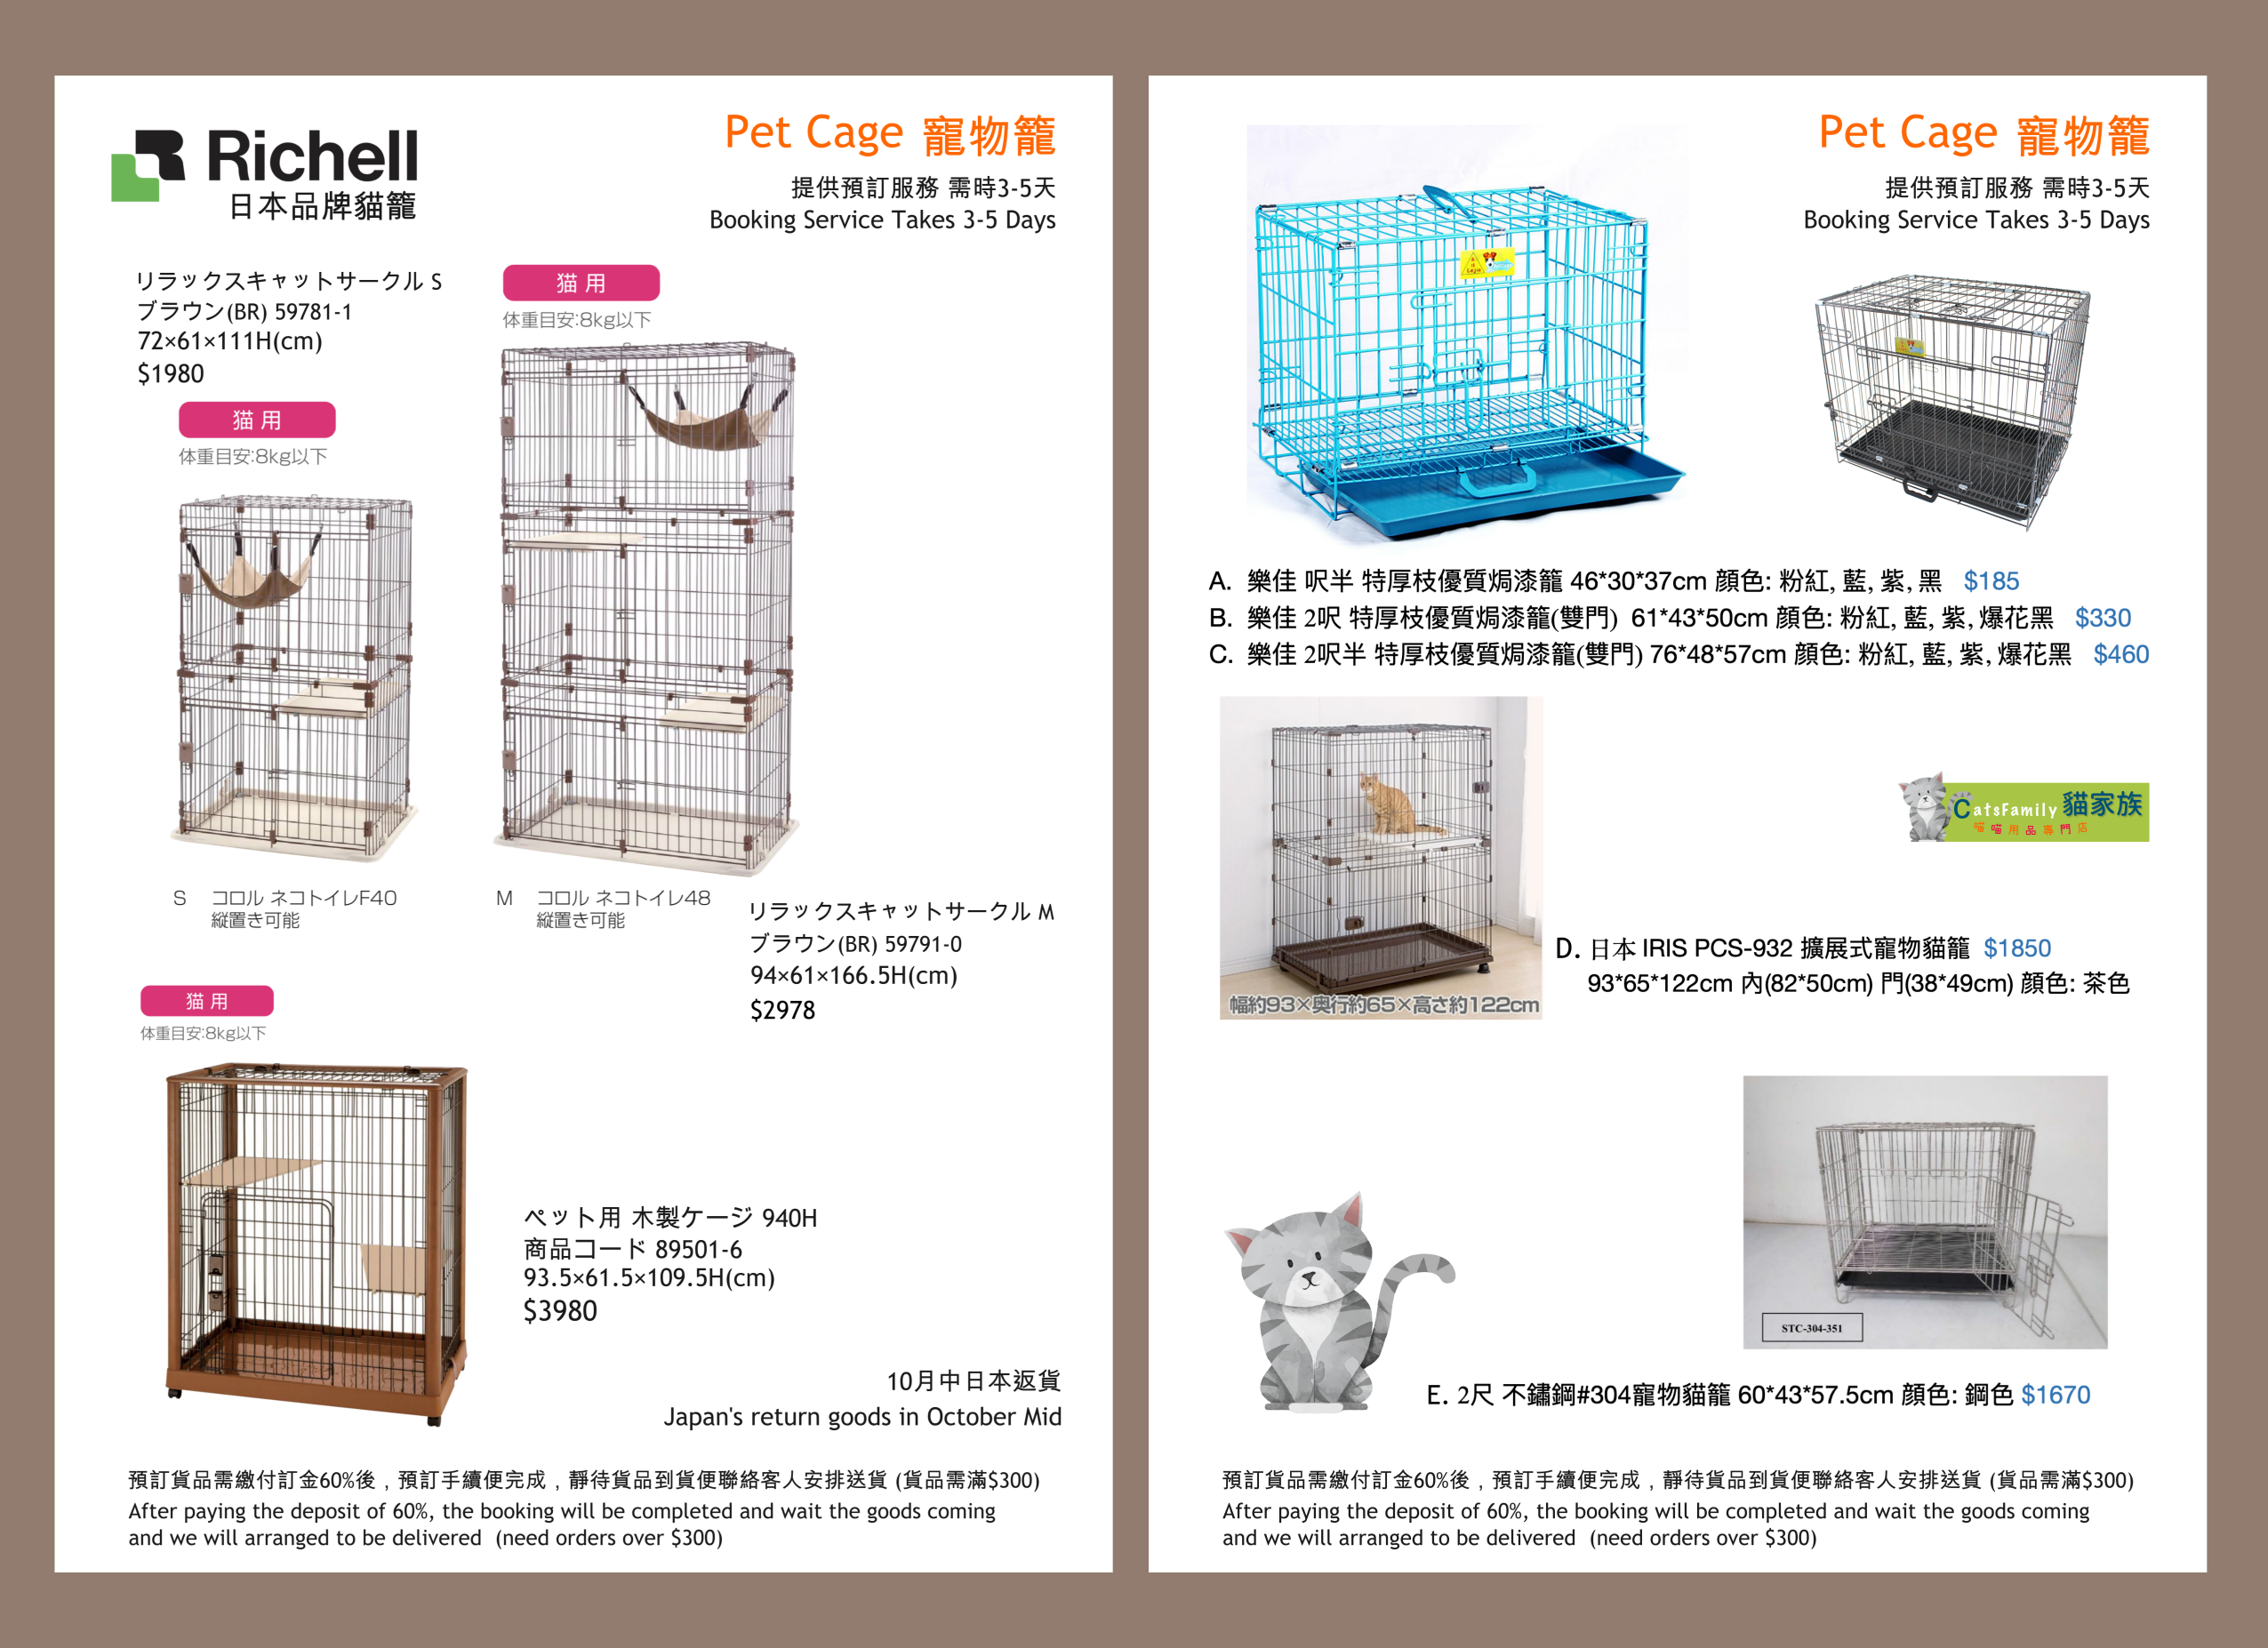 Latest Booking Service - Cat Pet Cage